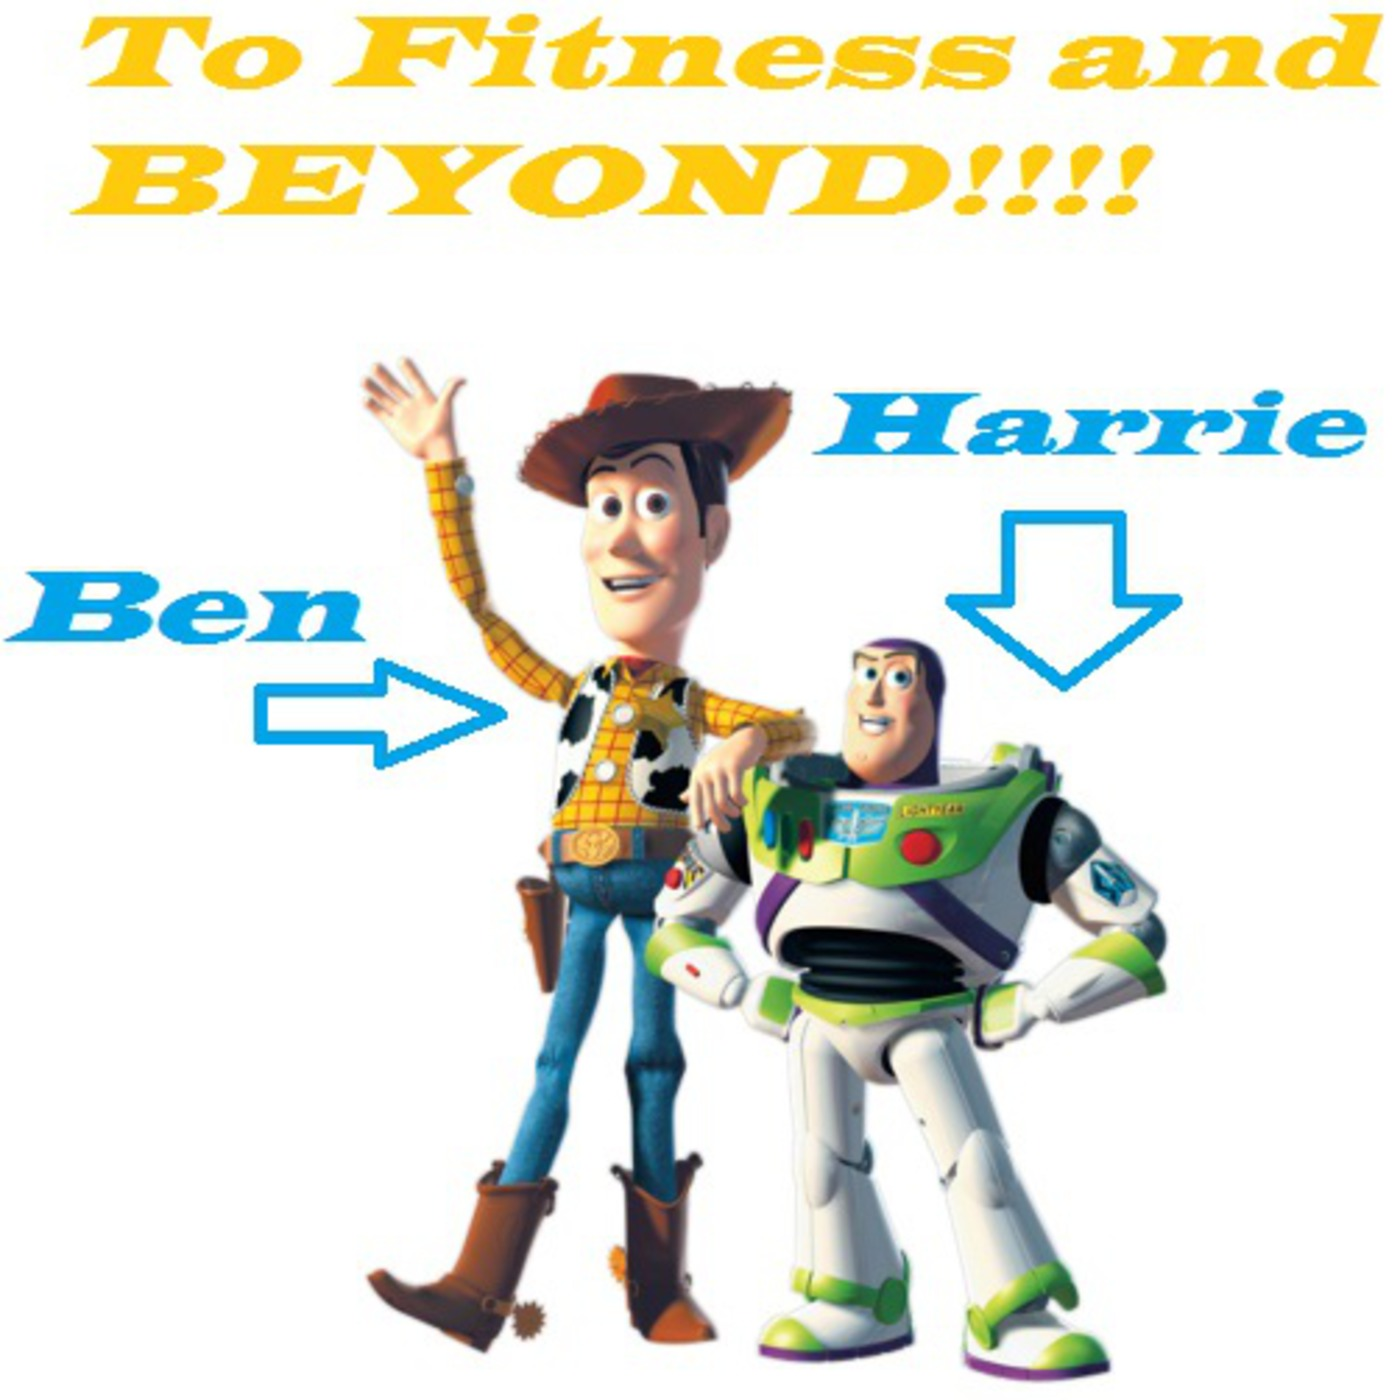 To Fitness and Beyond PodCast!